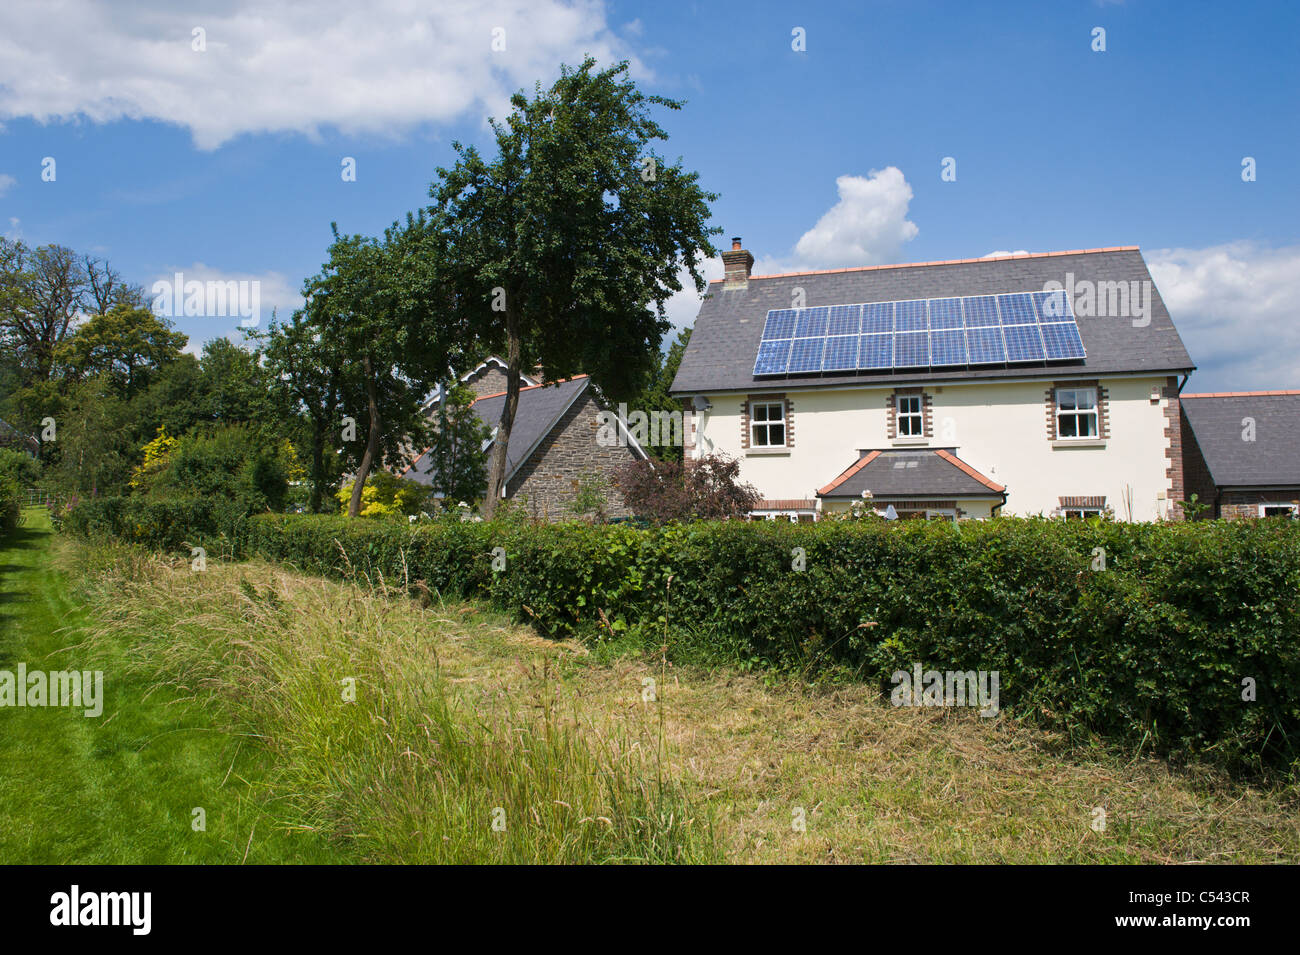 solar panels house UK. Solar panels on roof of detached house in village of Llangattock Powys South Wales UK - Stock Image